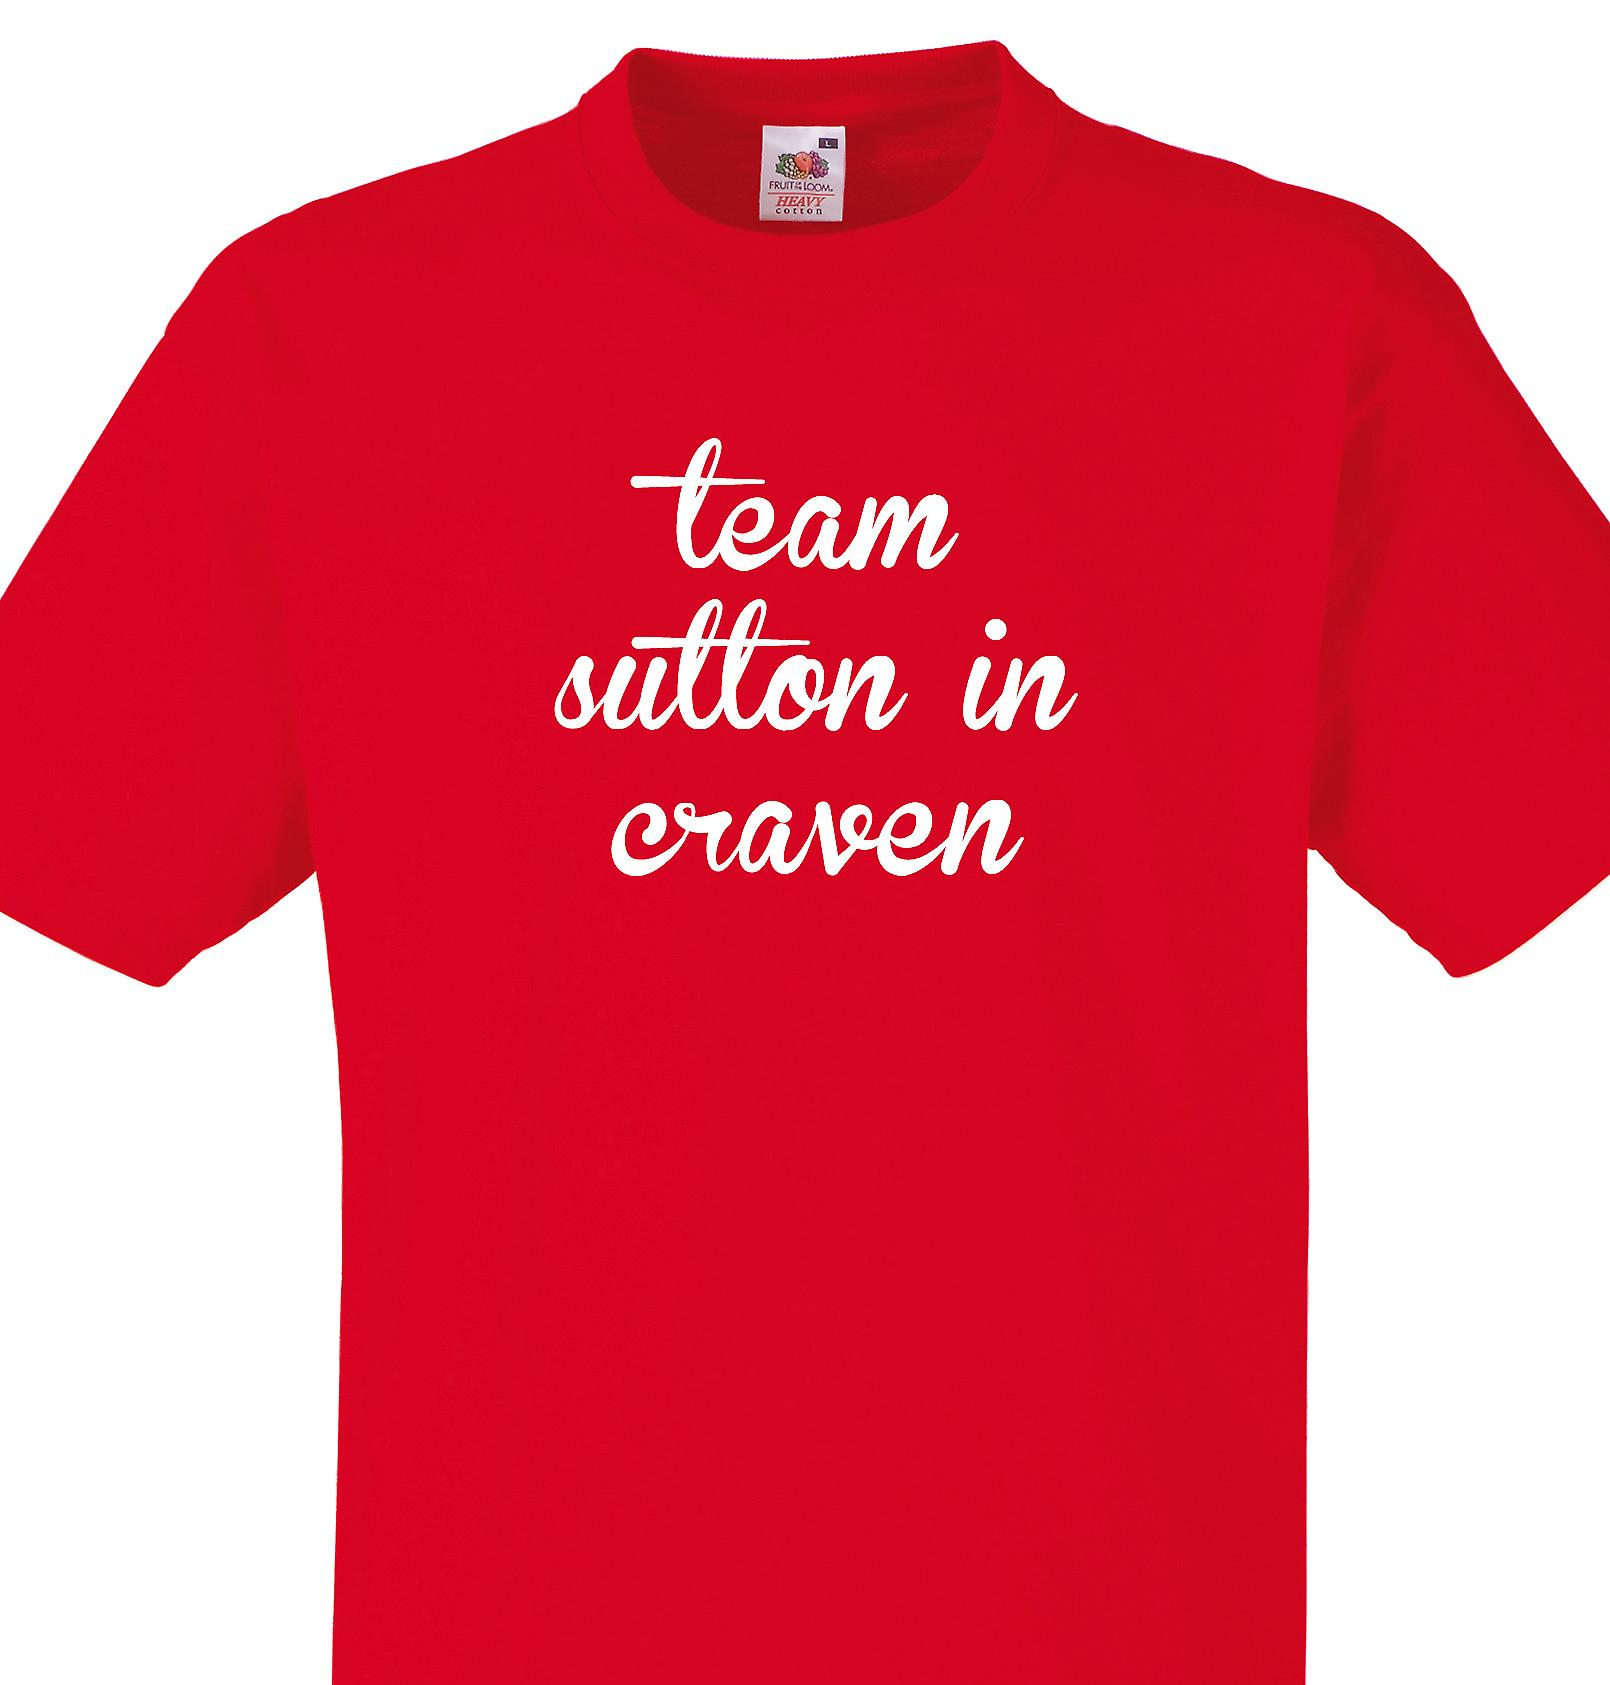 Team Sutton in craven Red T shirt